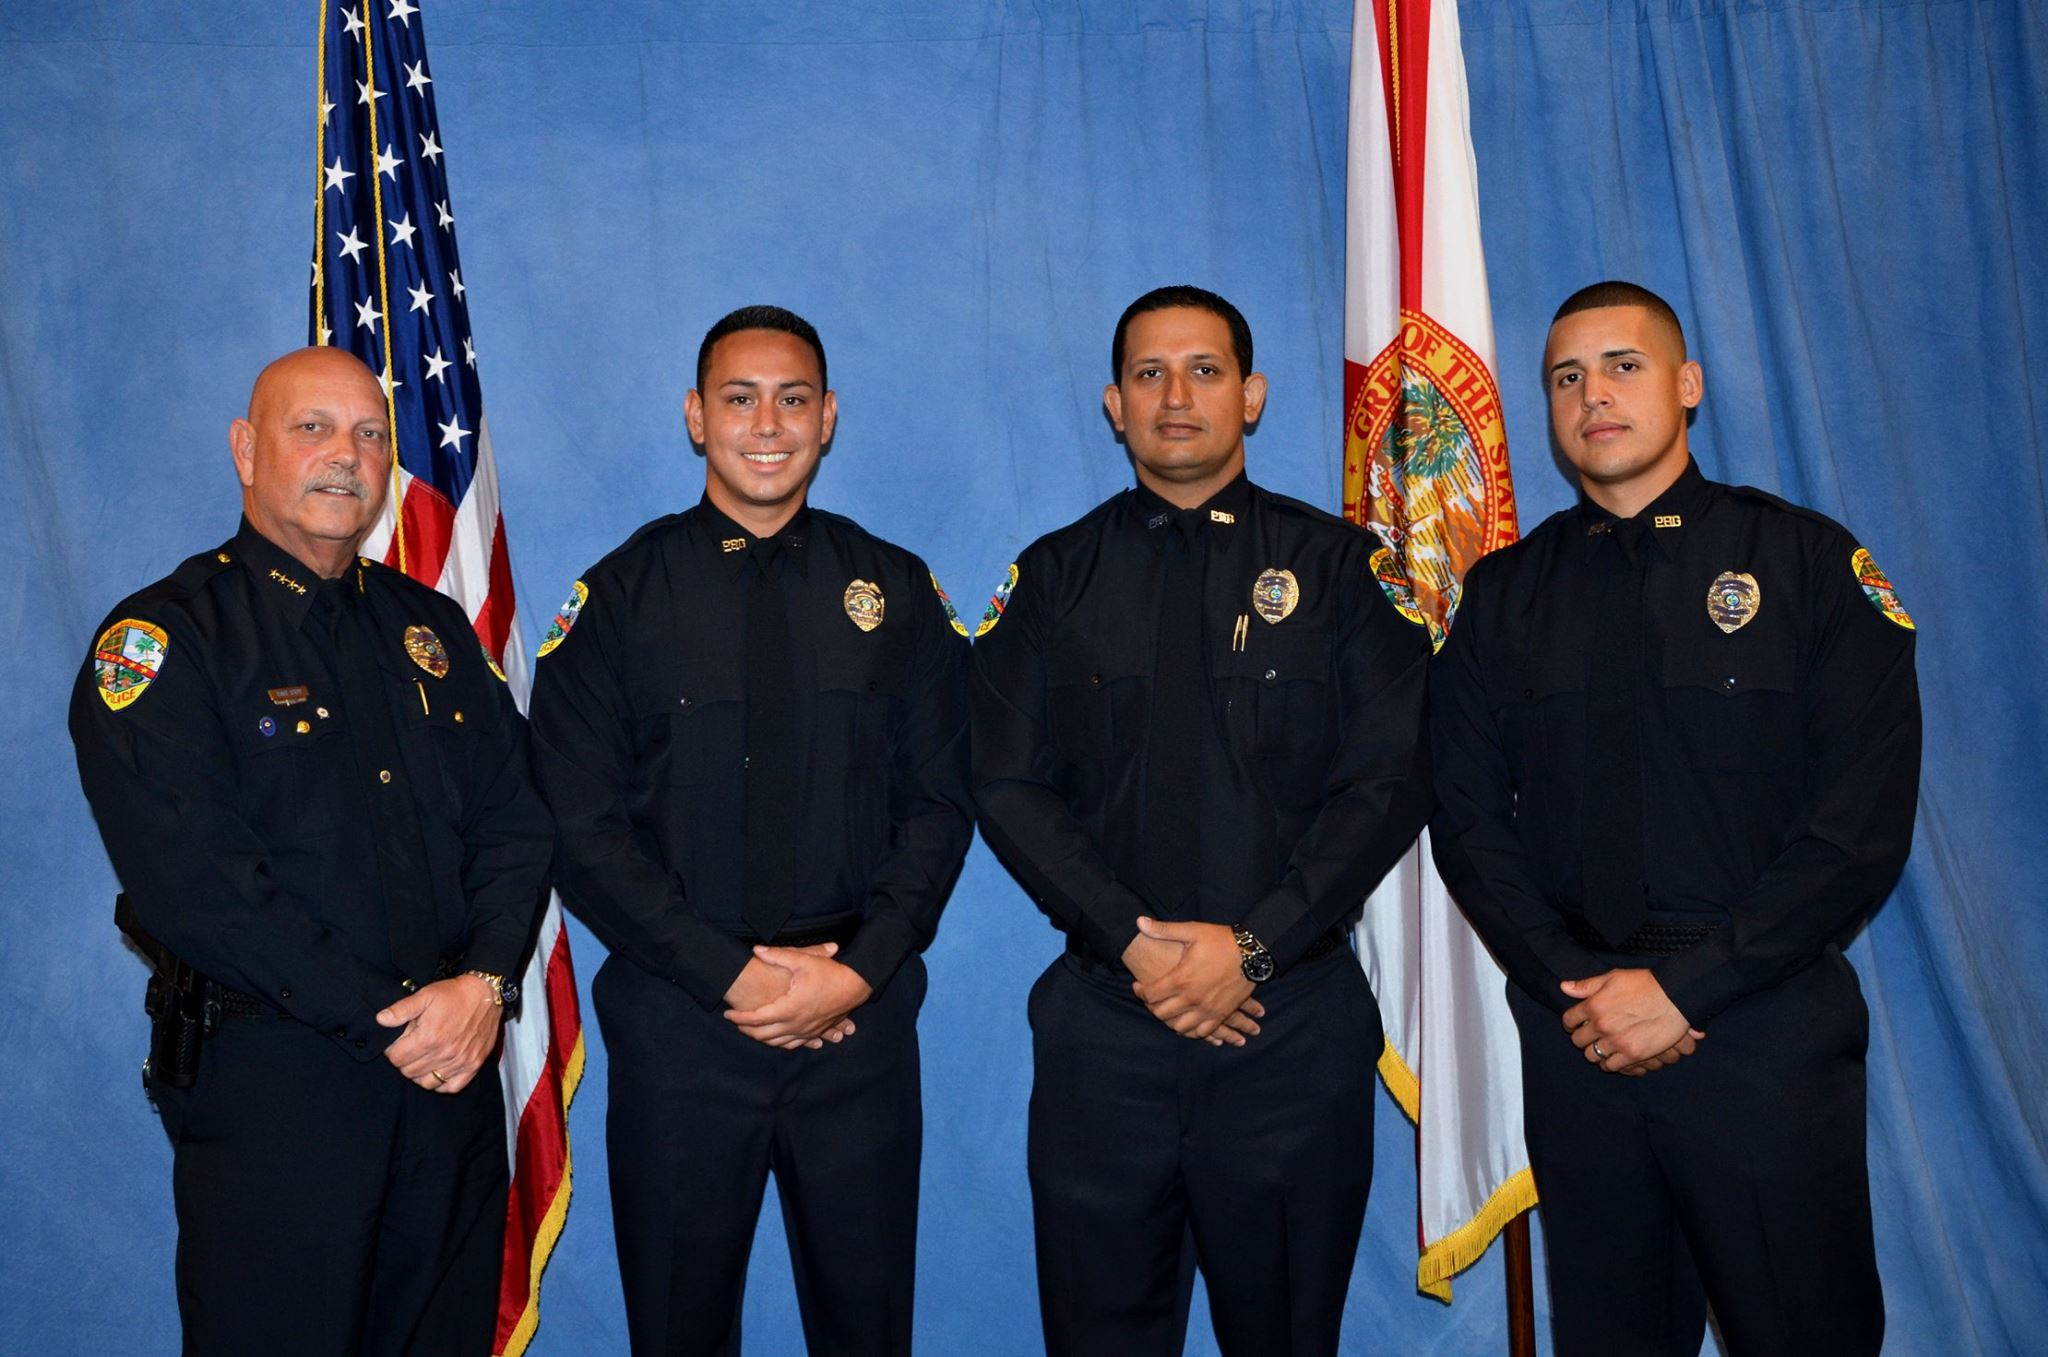 officer nouman raja, nouman raja, nouman raja corey jones, palm beach gardens florida police officer nouman raja